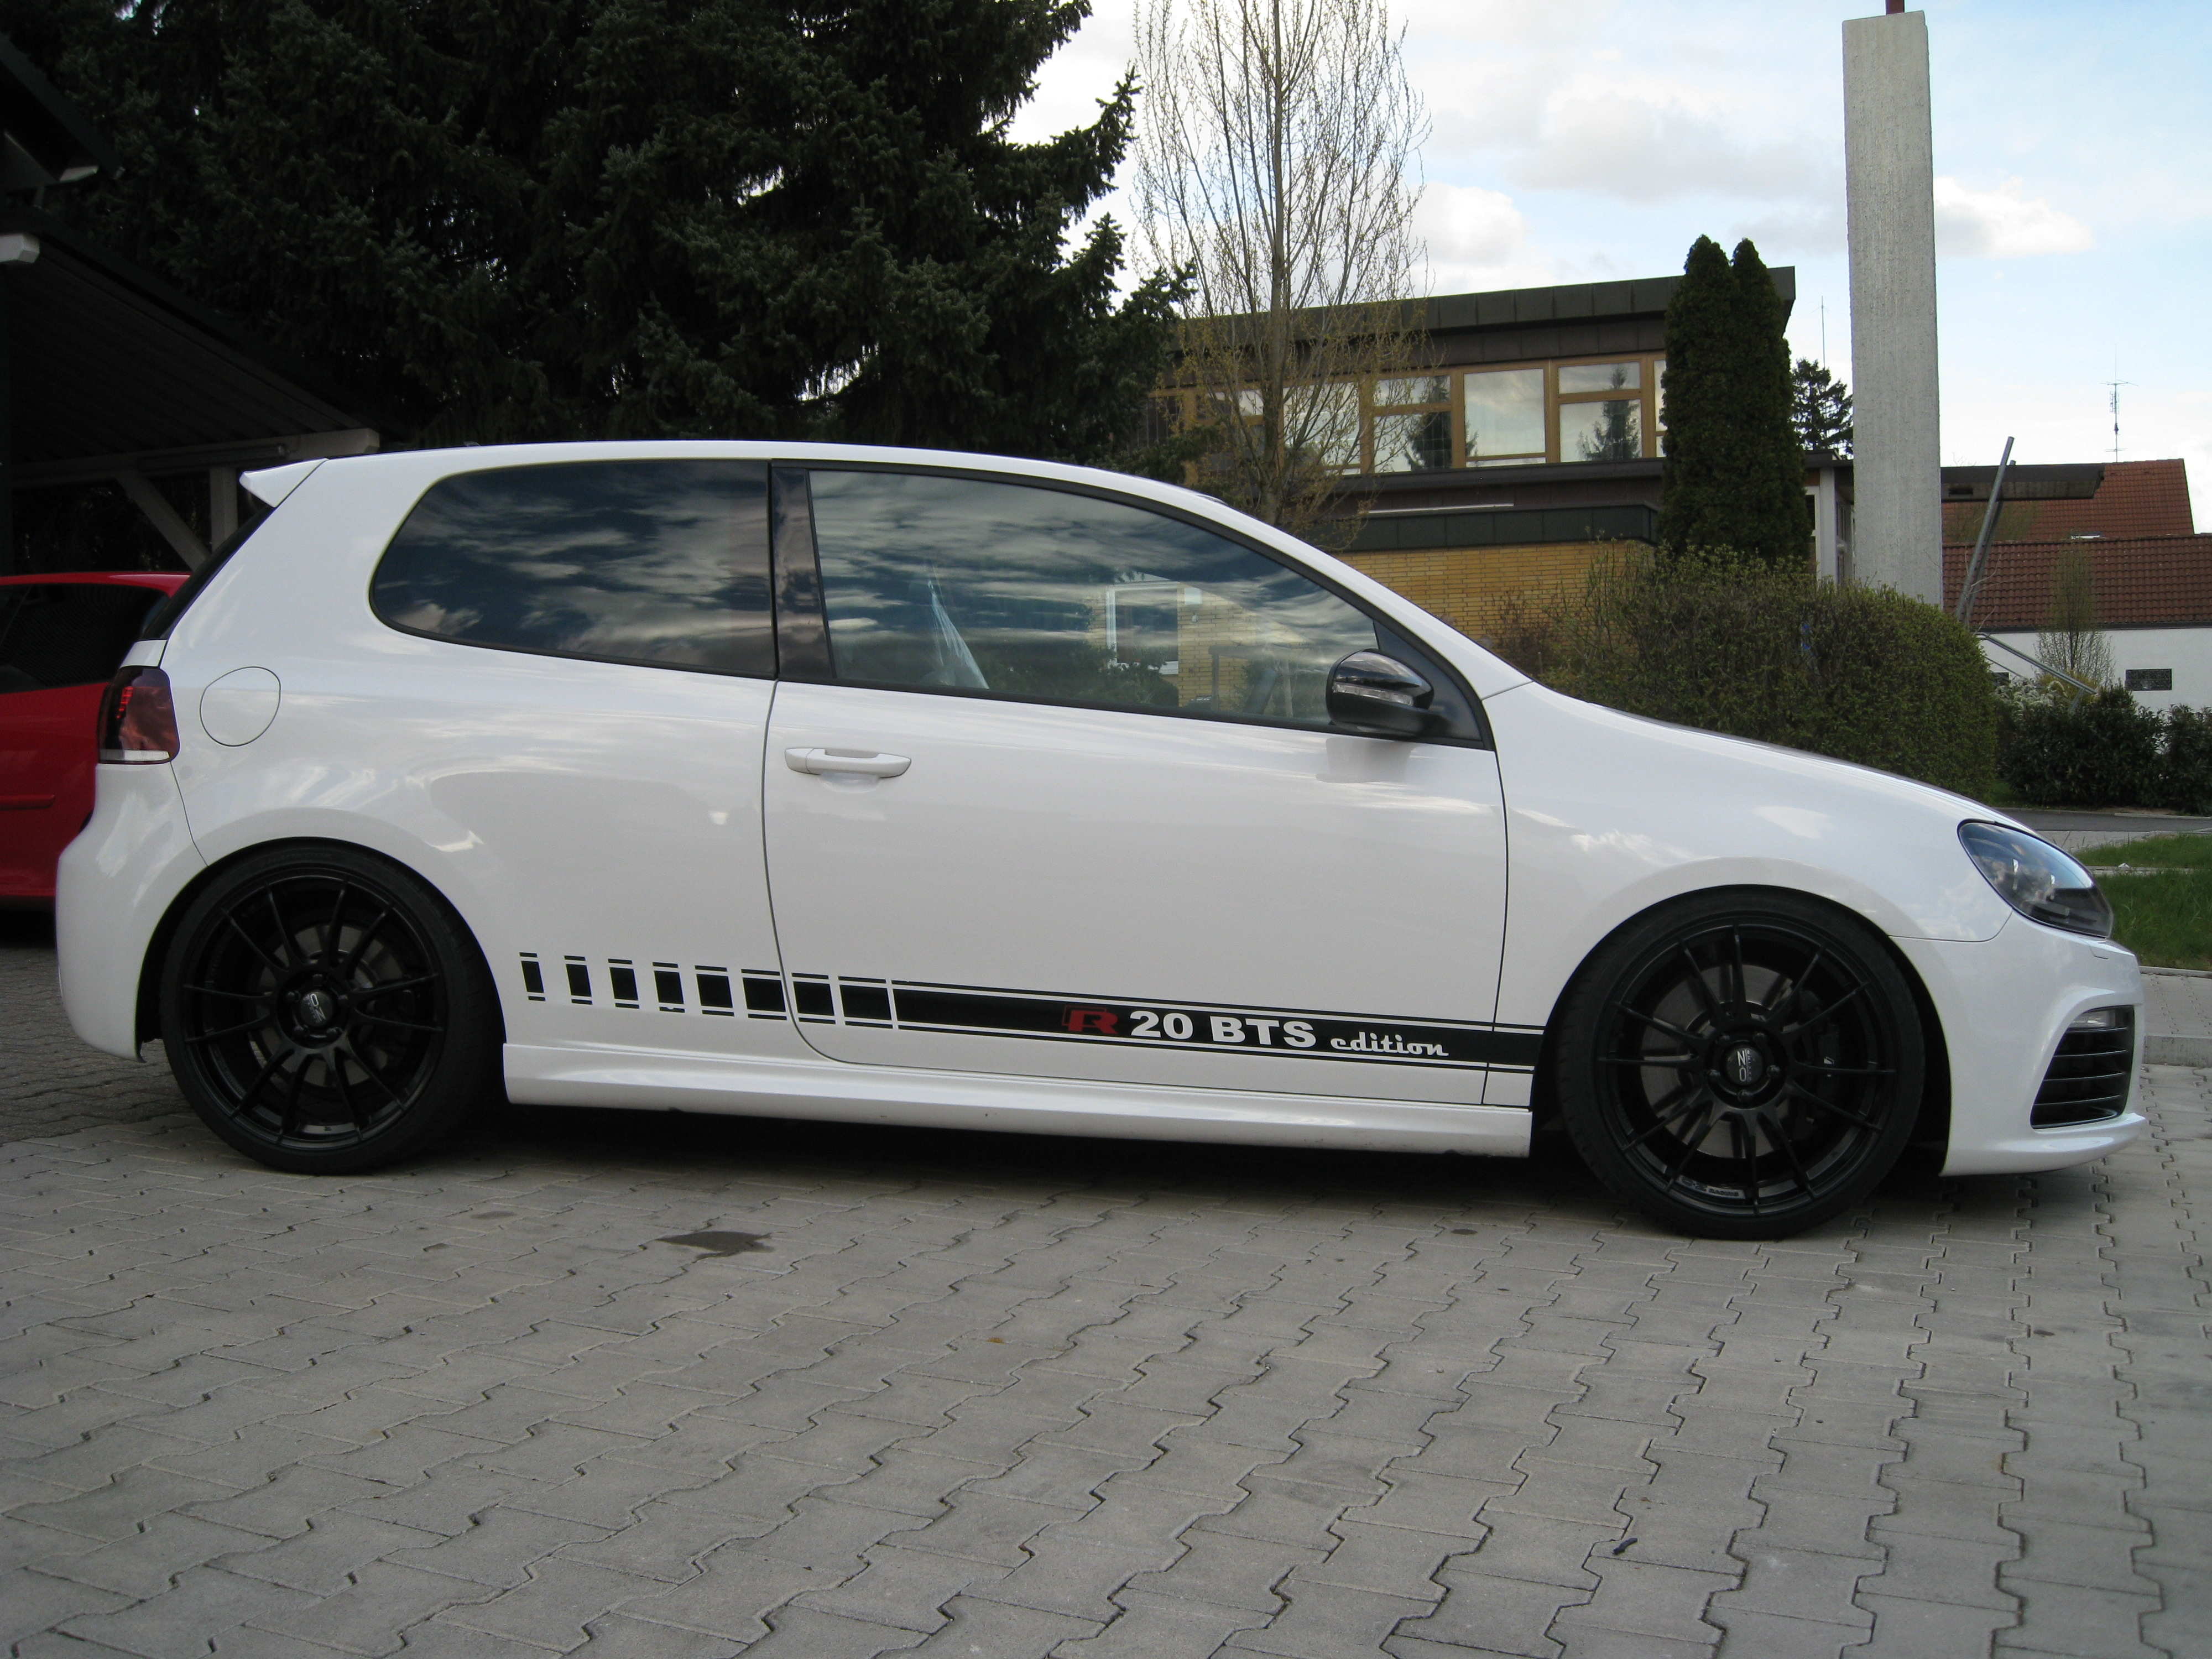 r20 page 1 members rides mk5 golf gti. Black Bedroom Furniture Sets. Home Design Ideas